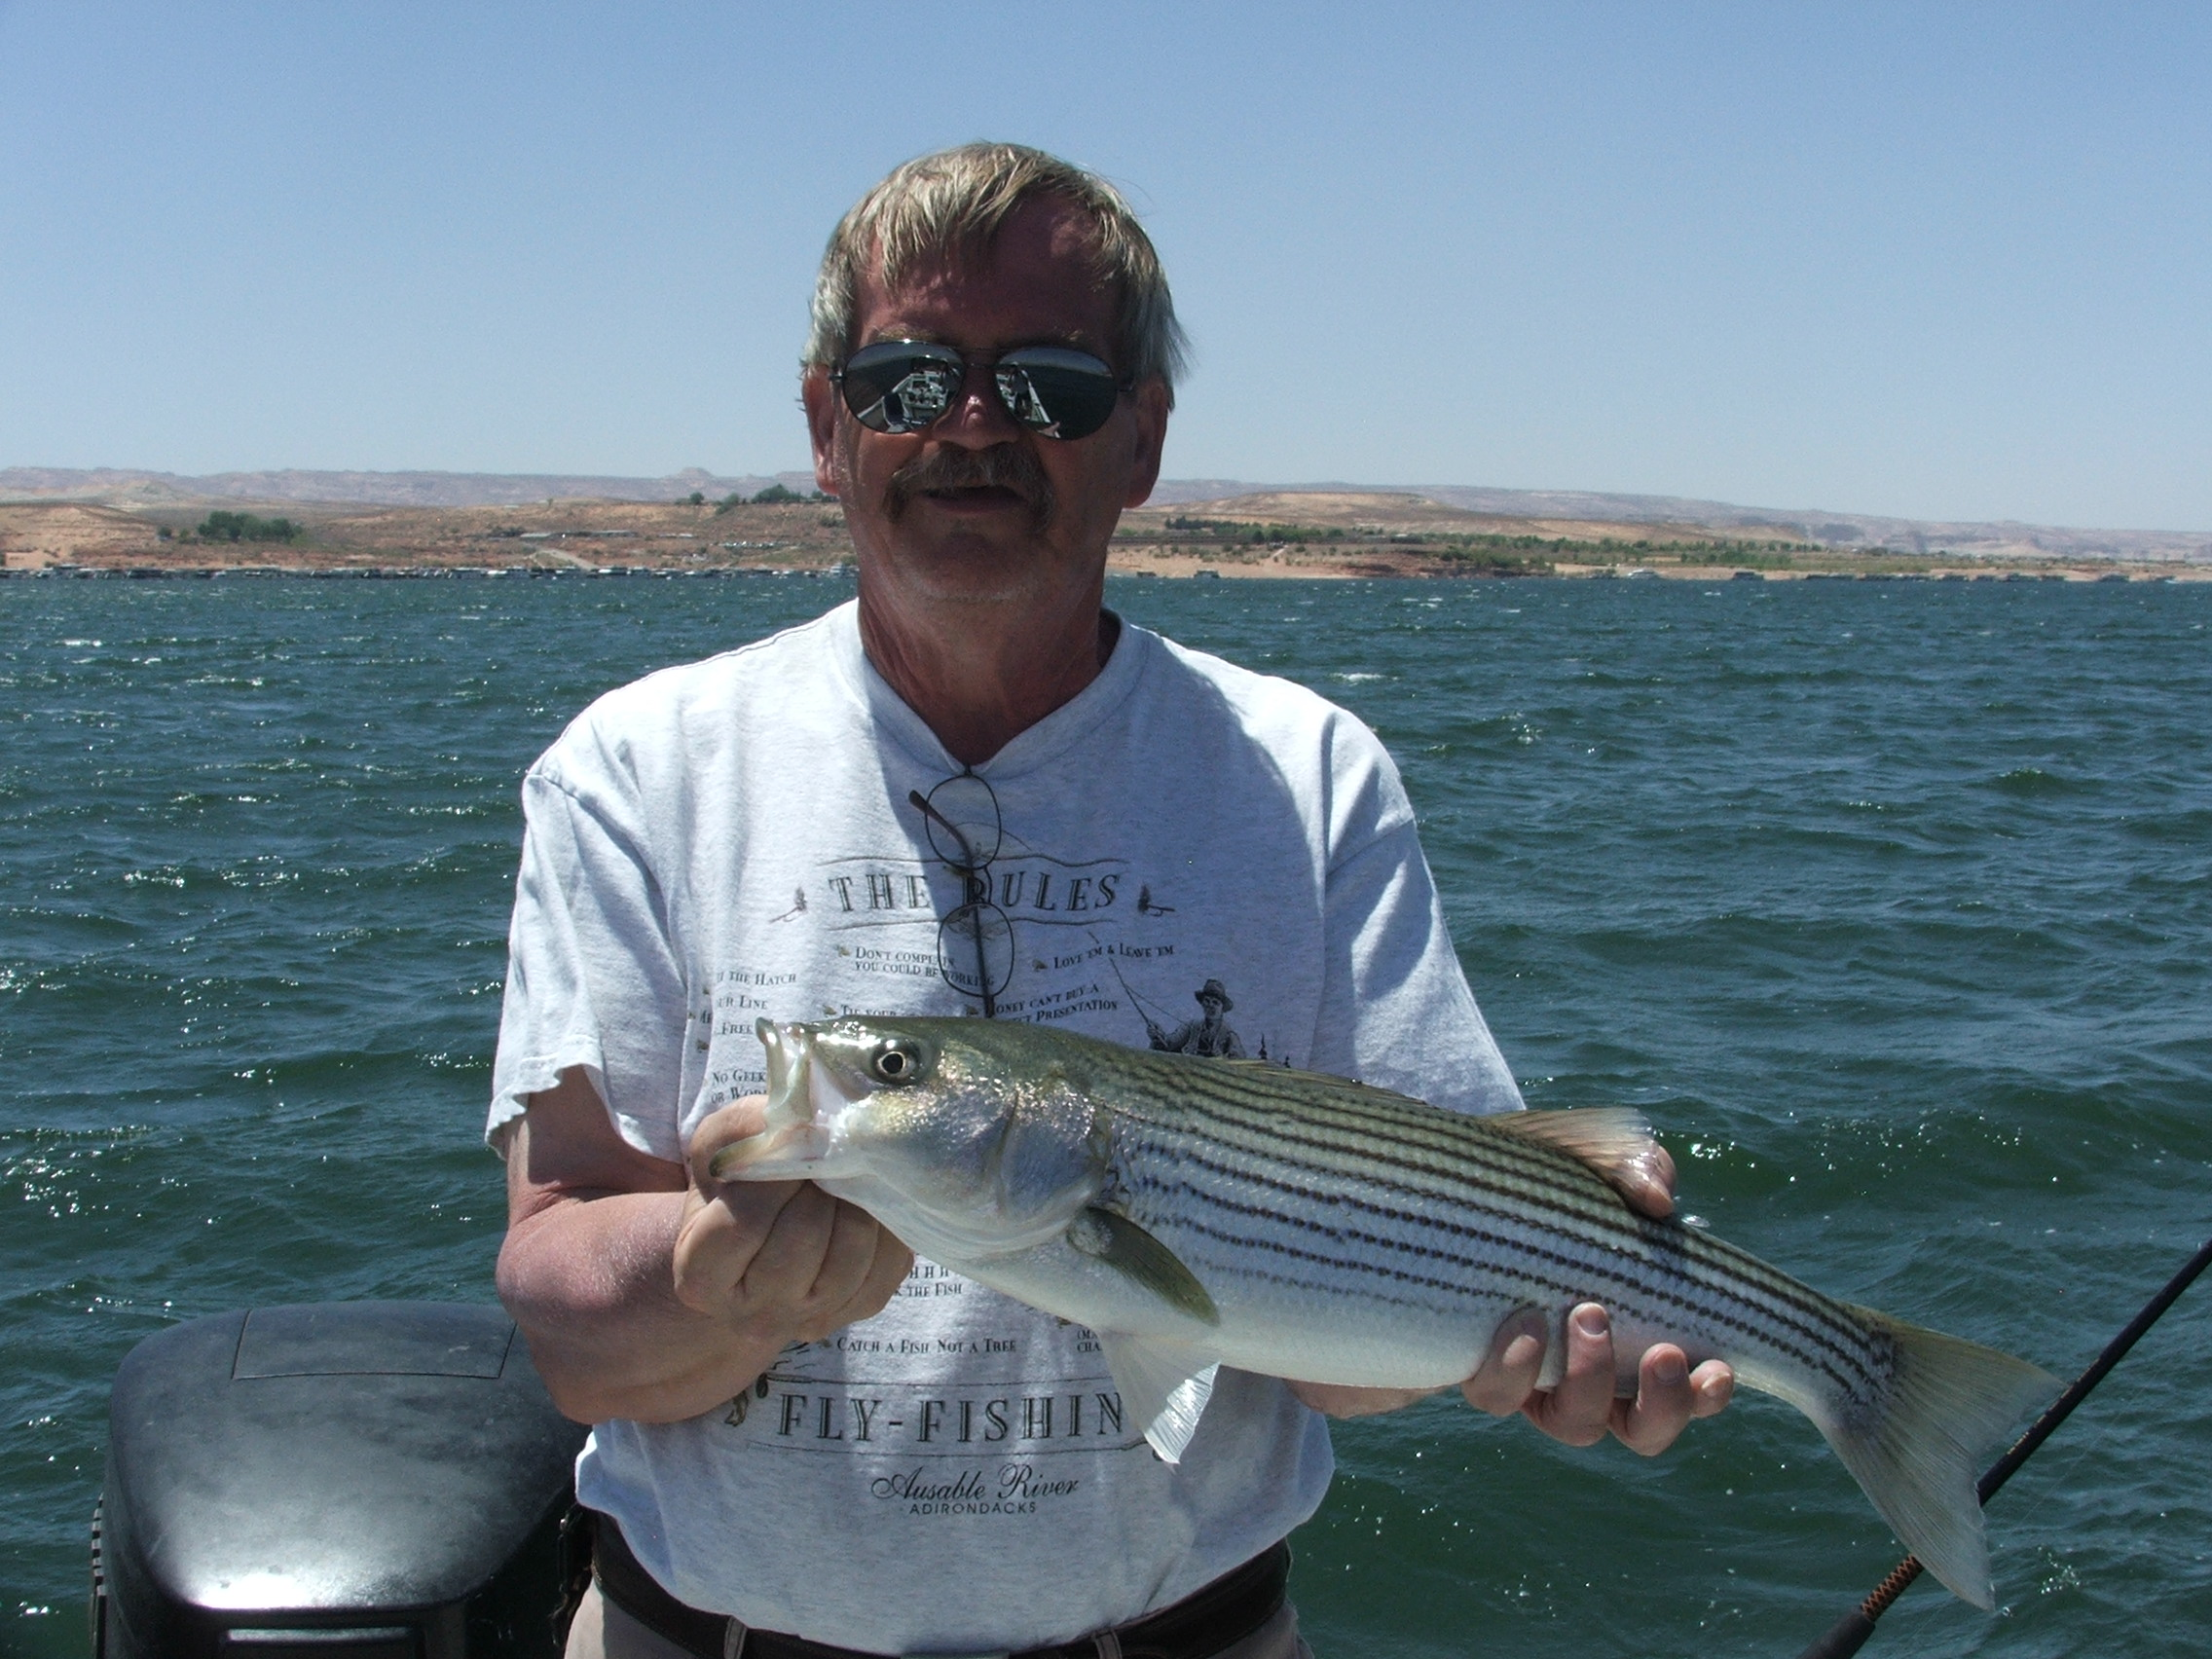 Lake powell fishing report 6 09 12 ambassador guides at for Nj fishing reports freshwater